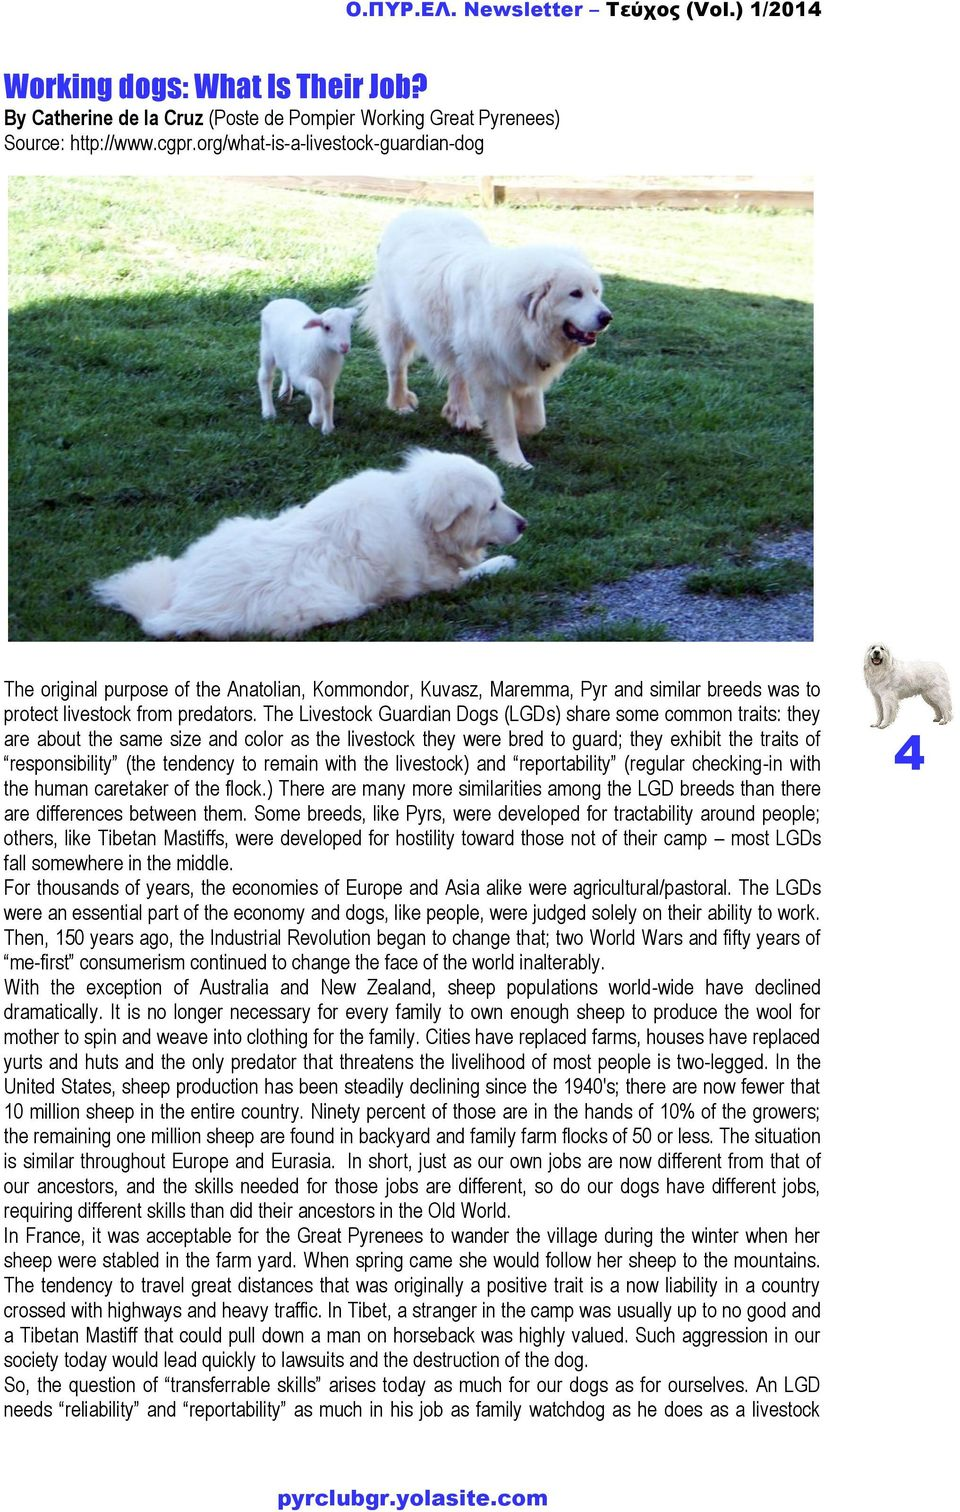 The Livestock Guardian Dogs (LGDs) share some common traits: they are about the same size and color as the livestock they were bred to guard; they exhibit the traits of responsibility (the tendency